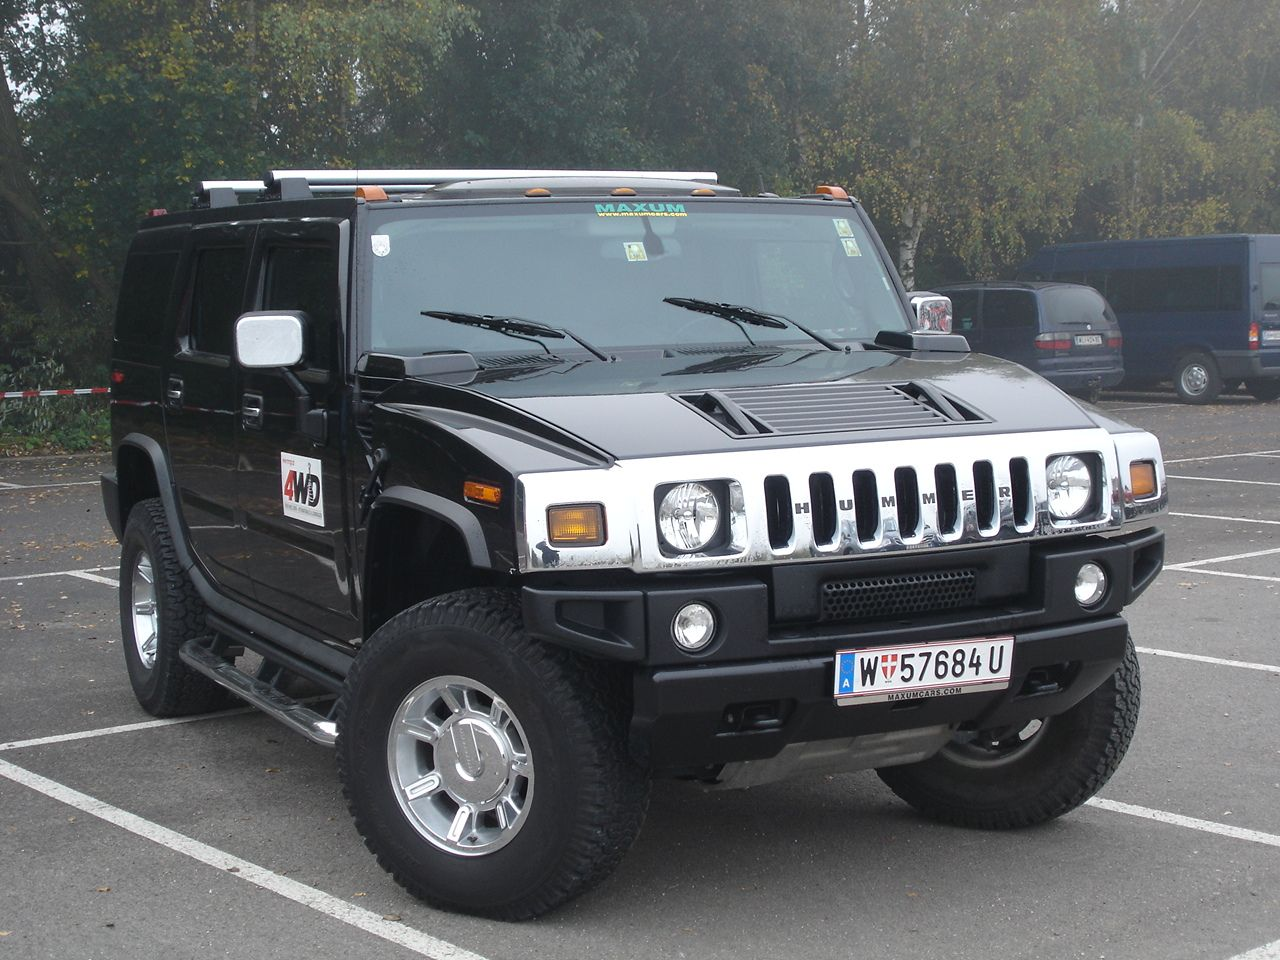 Hummer h2 iphone 66 plus wallpaper cars iphone wallpapers hummer h2 iphone 66 plus wallpaper cars iphone wallpapers pinterest hummer h2 hd iphone backgrounds and cars vanachro Choice Image